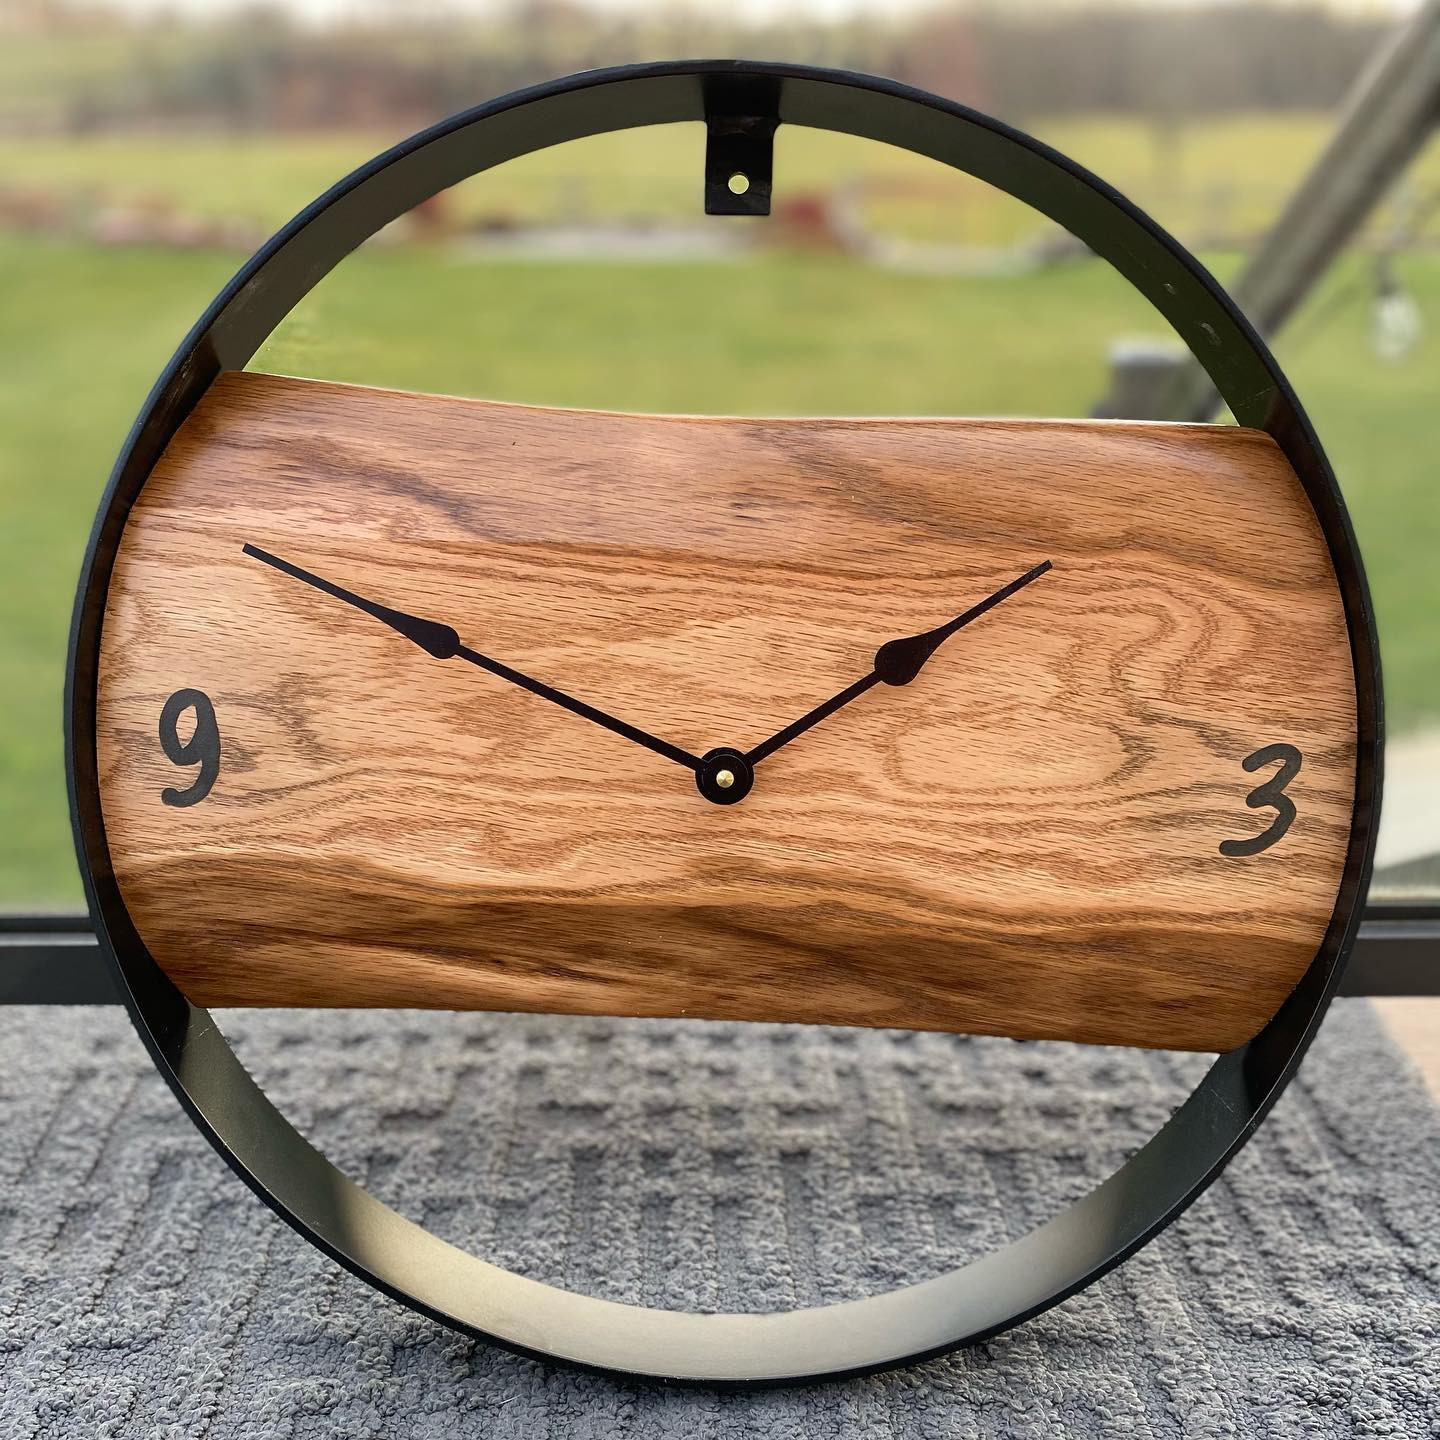 """18"""" Oak Clock  Simplicity makes a statement with this particular piece. Stained fruitwood and finished with satin polyurethane. The numbers are hand carved with a trimmer router and filled with stone tinted resin epoxy. Powered by high torque Quartz movements. The clock parts were provided by Craftime Clockery, in Arthur, Ontario. The metal ring sourced at Taylored Custom Fab in London, Ontario. $149"""